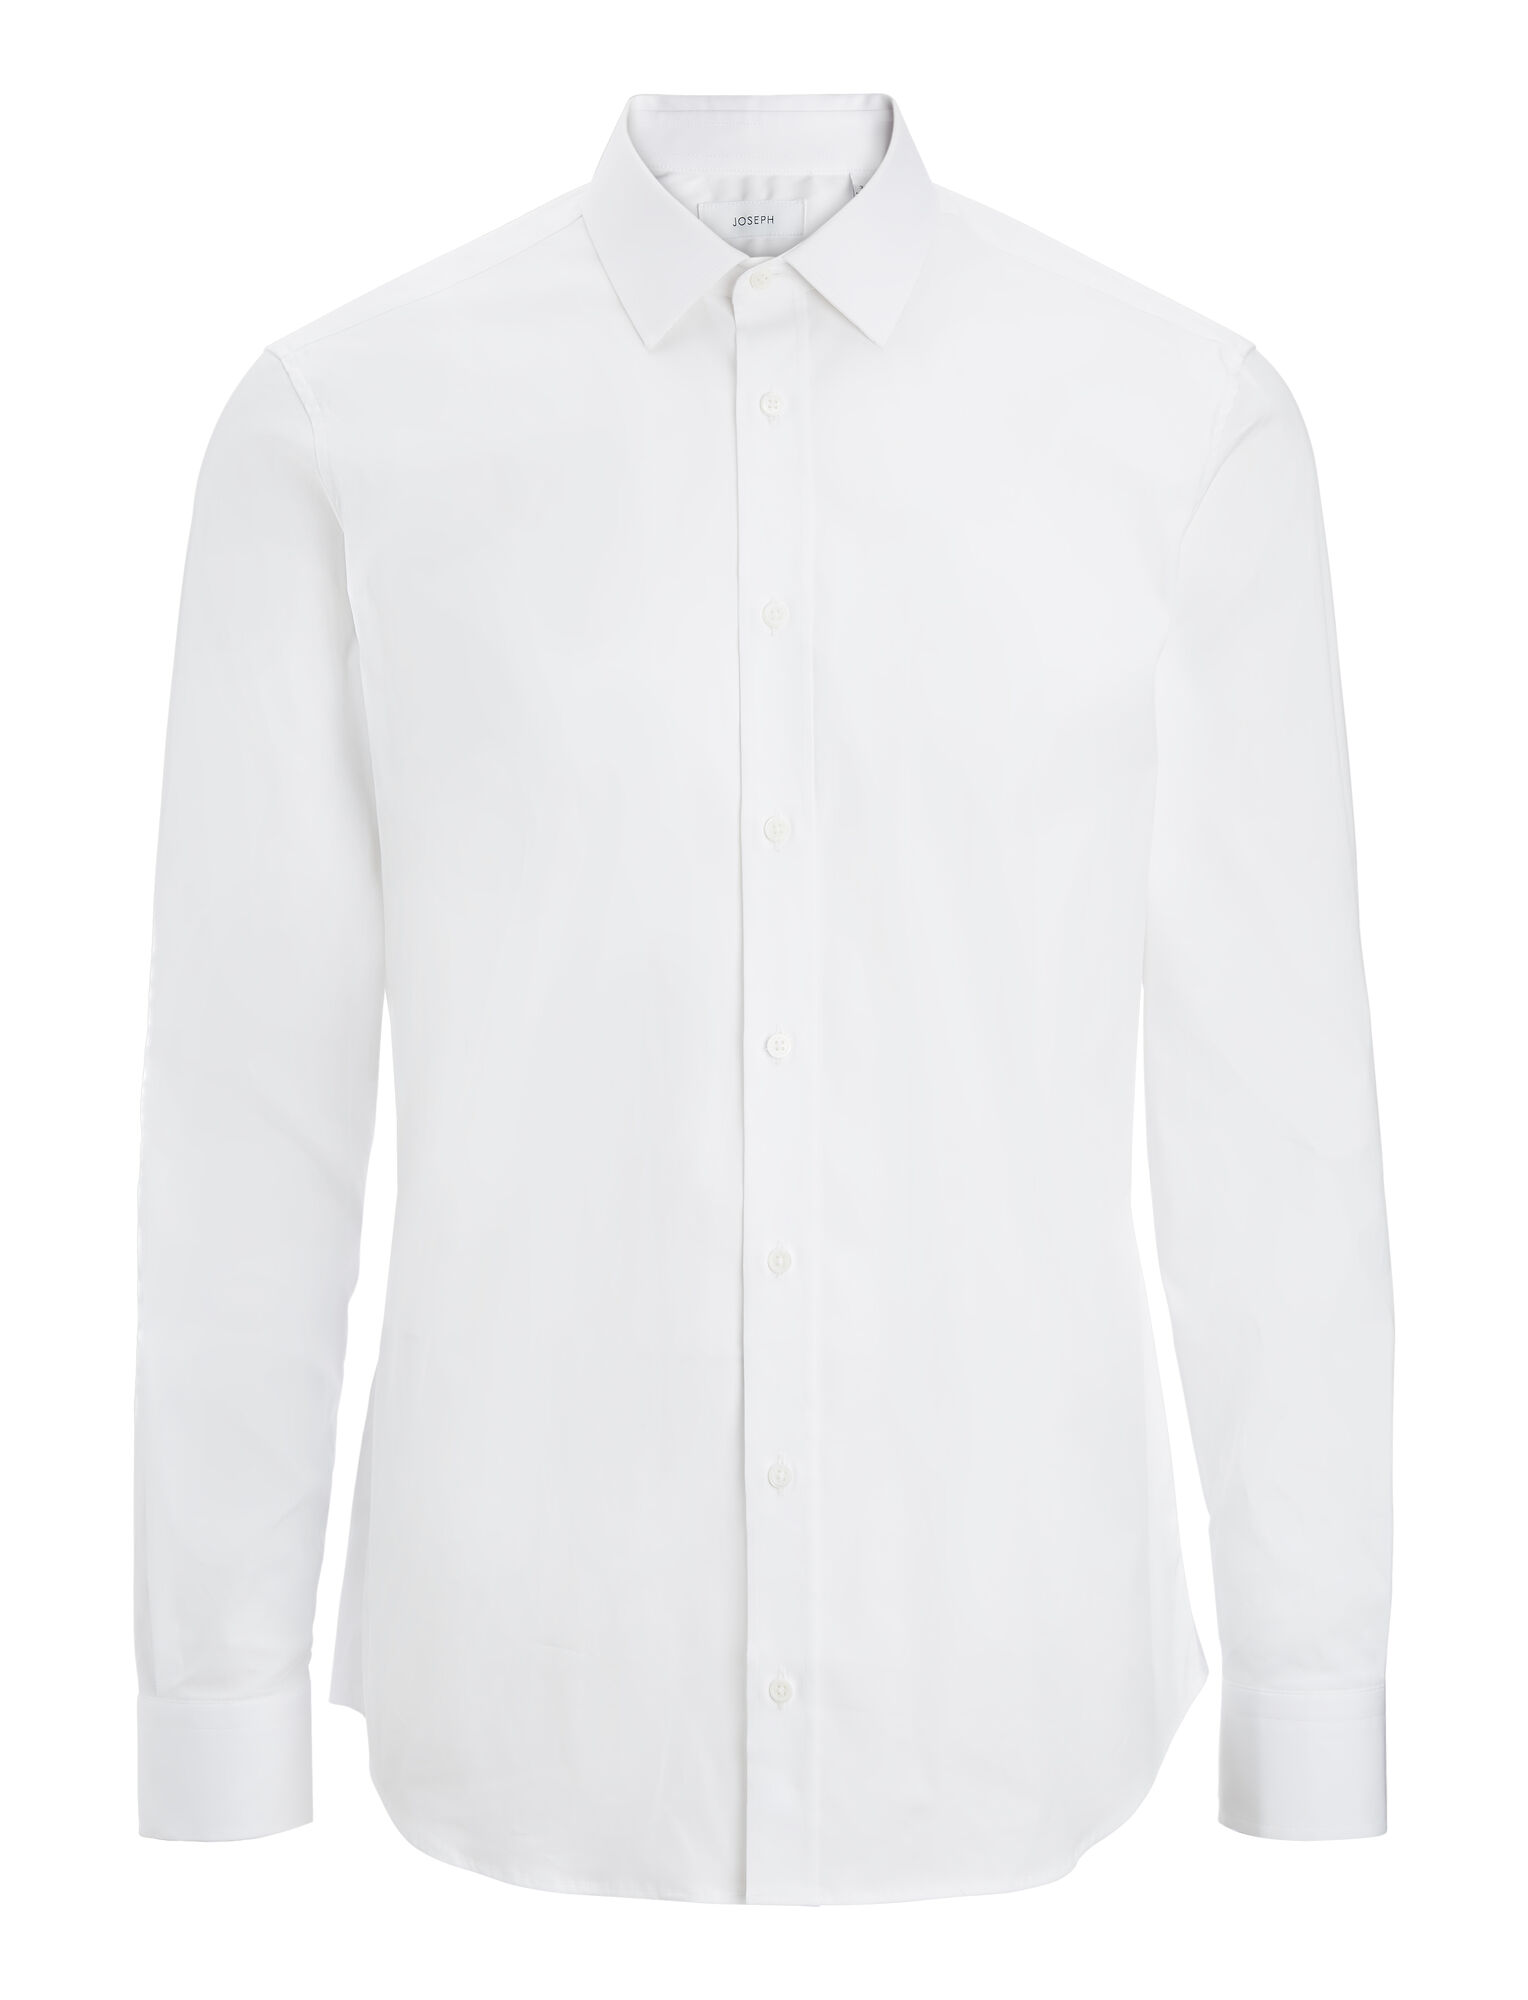 Joseph, Jim Poplin Stretch Shirt, in WHITE